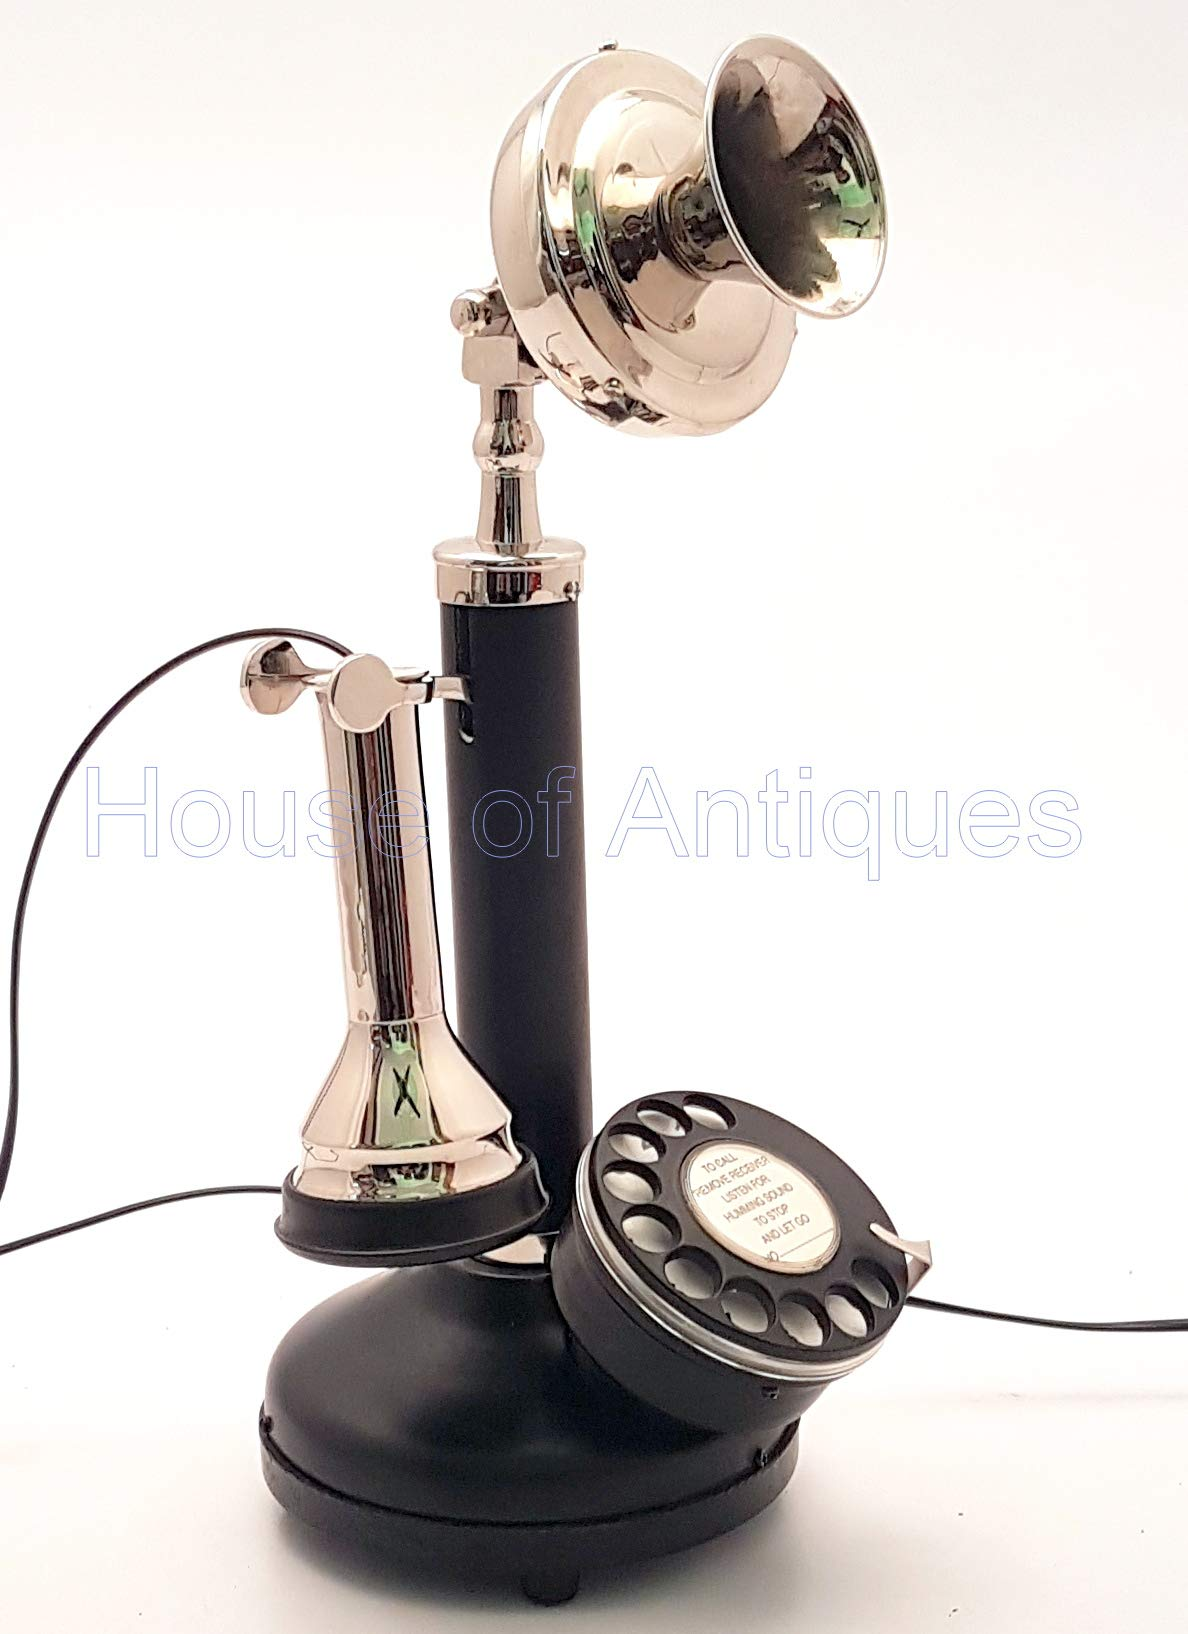 HOUSE OF ANTIQUE Antique Replica Rotery Dial Functional Candlestick Home Decor Desk Telephone. by HOUSE OF ANTIQUE